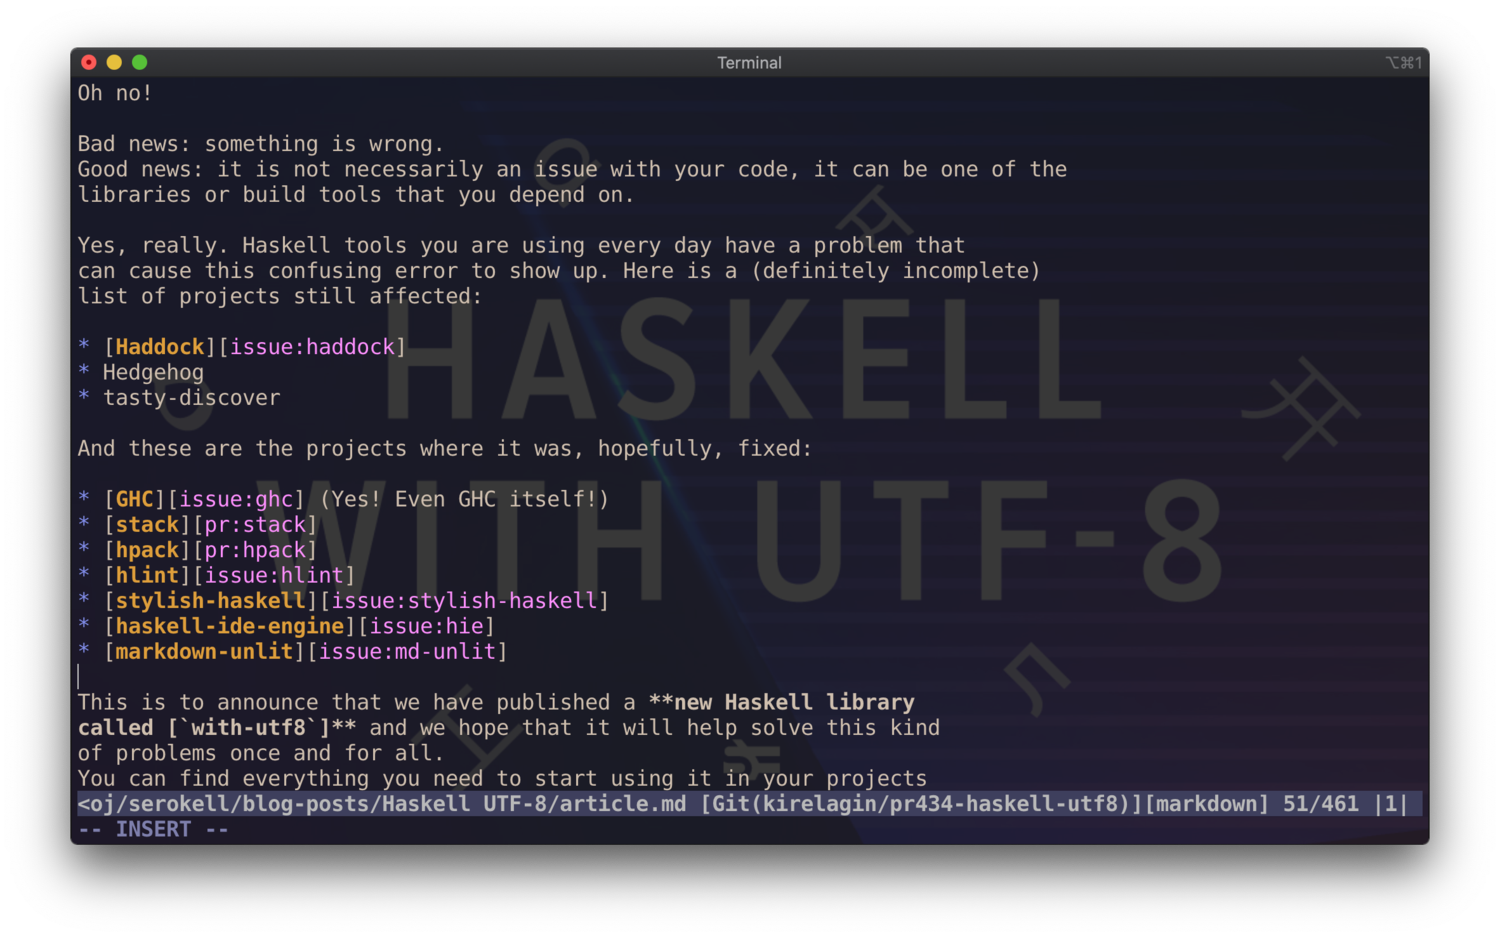 A file encoded as UTF-8 opened in vim